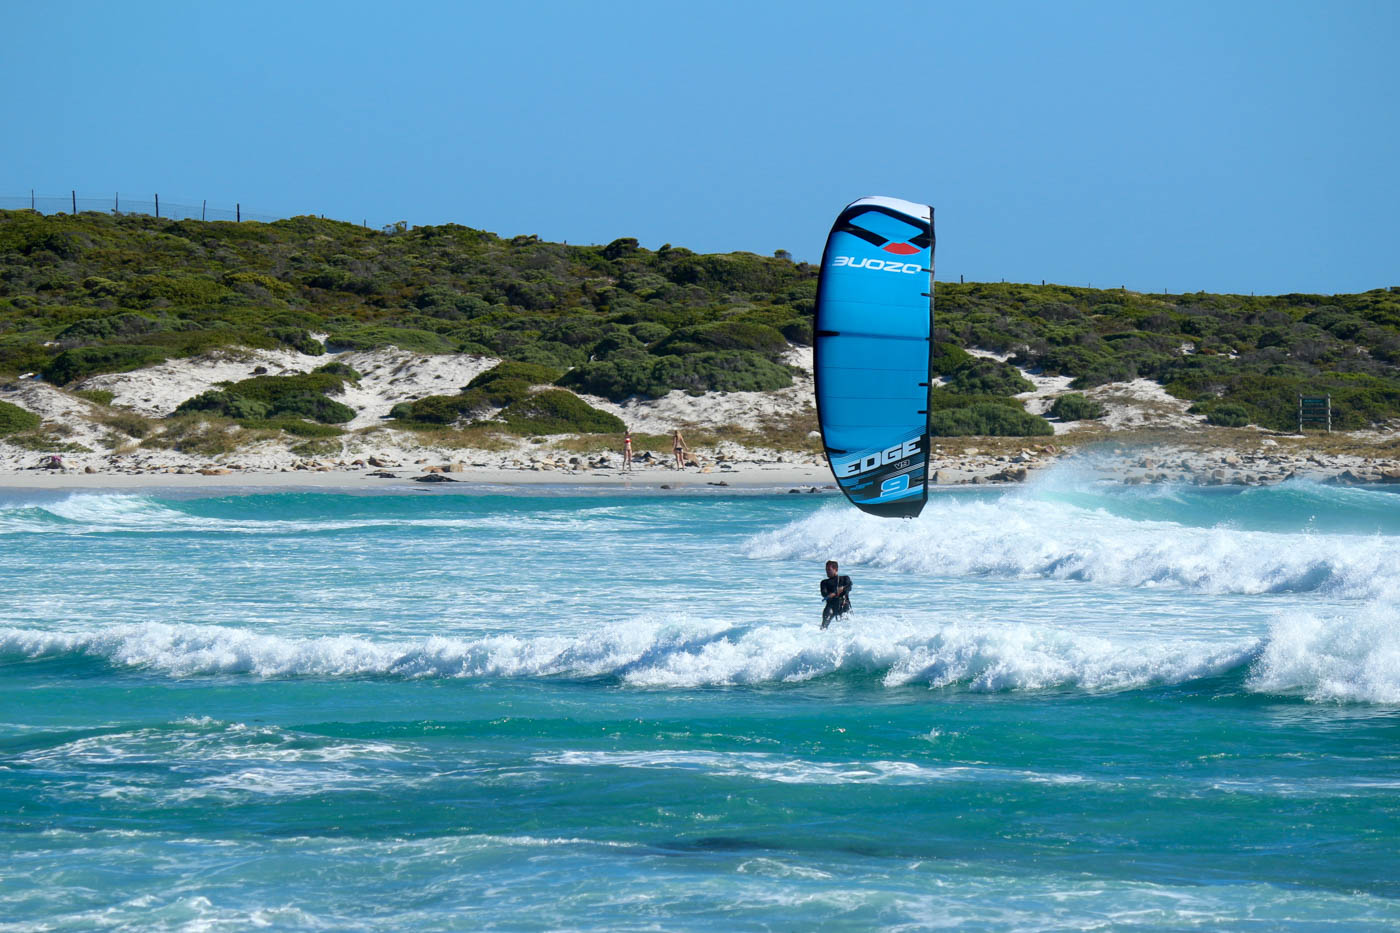 Ozone EDGE V9 – Packing a serious punch